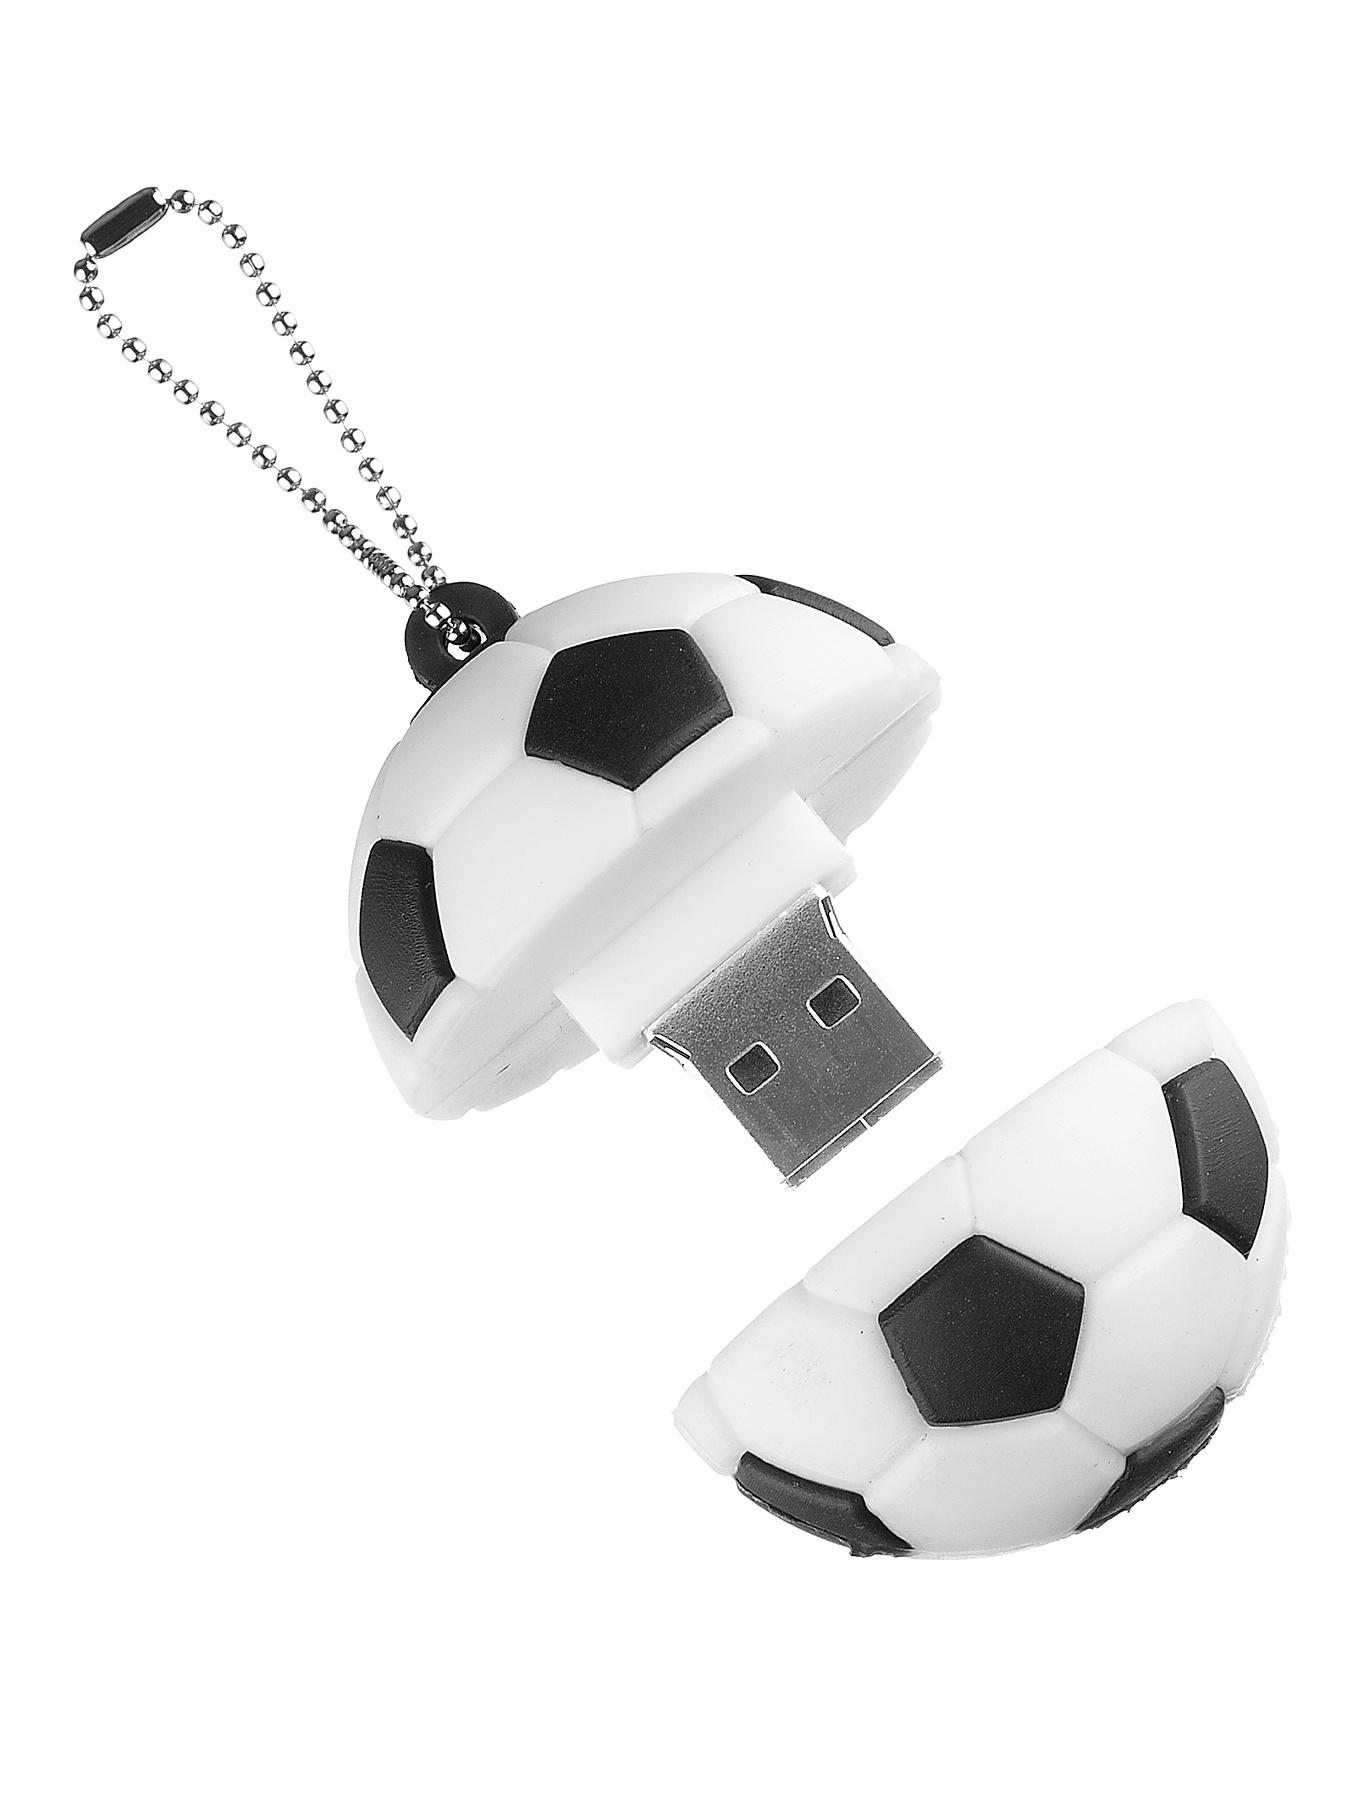 Trendz 8Gb Character Football USB Drive